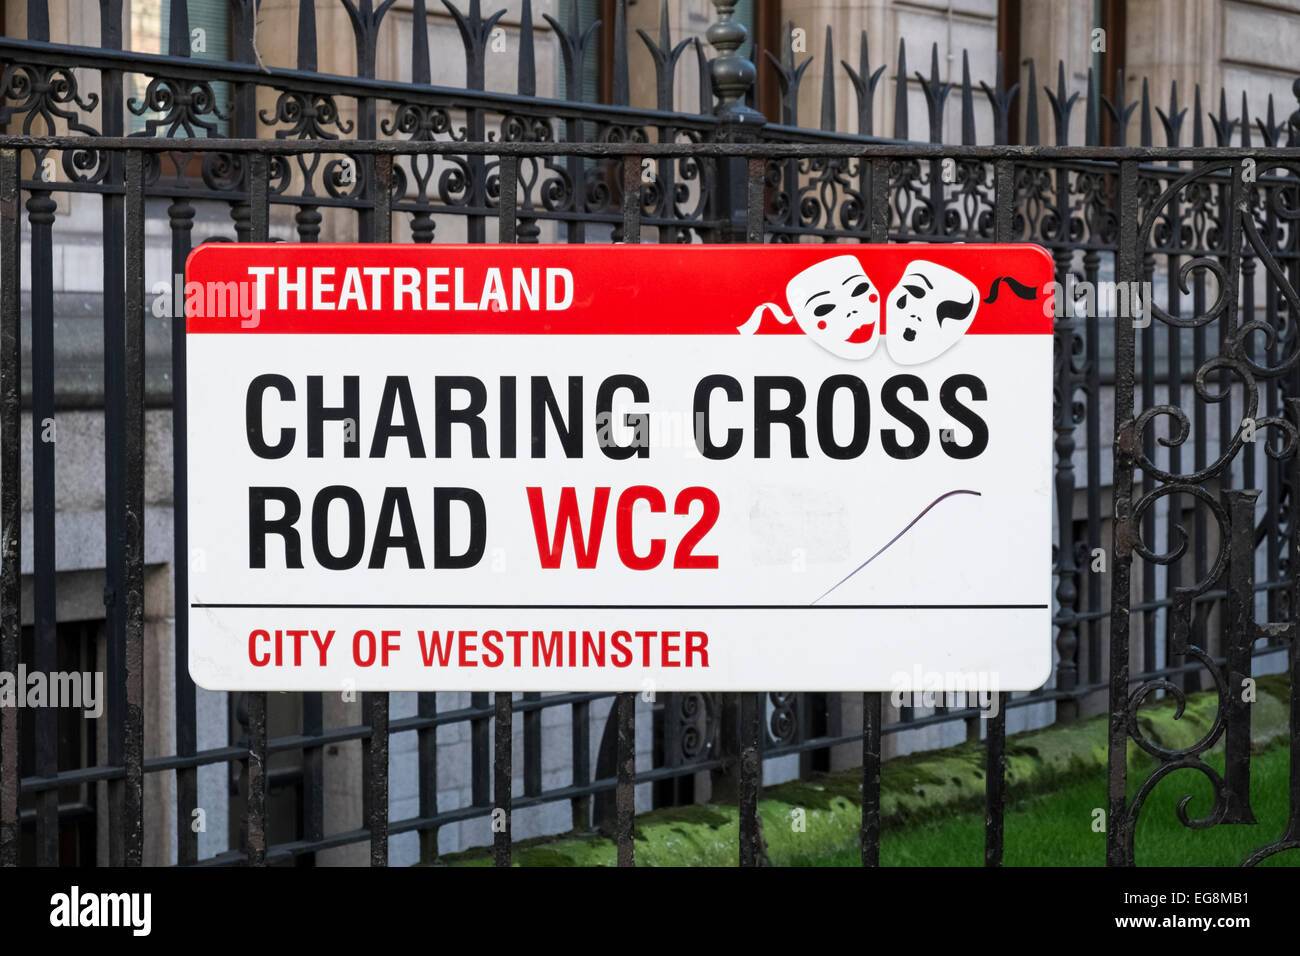 Charing Cross Road, WC2 street name sign, signifying location for Londons theatreland. - Stock Image